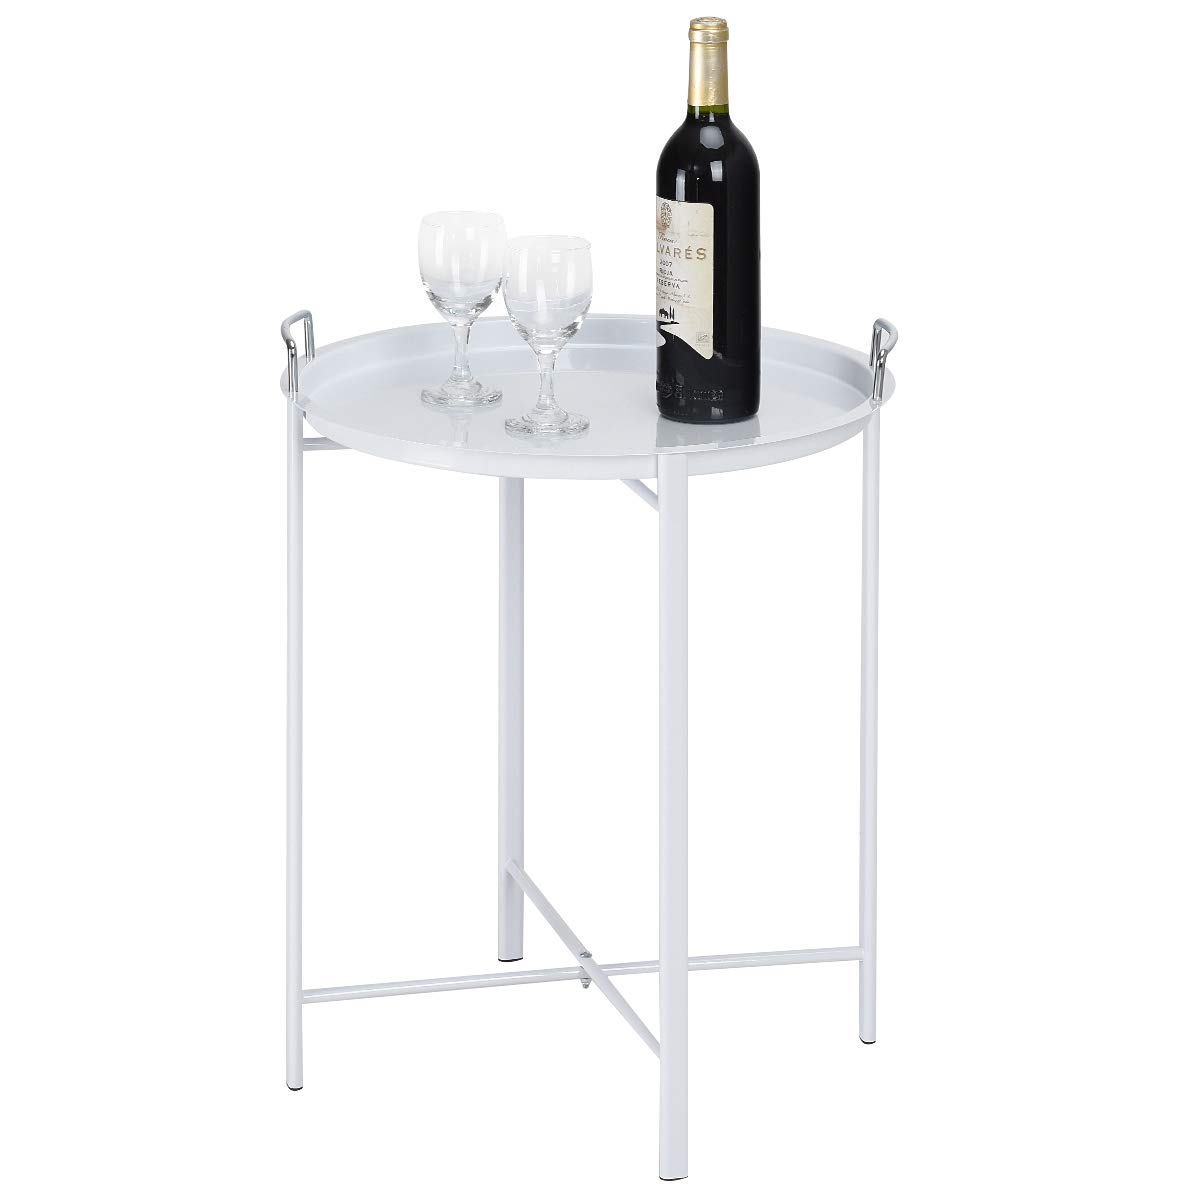 Giantex Patio Coffee Table Side Table Steel Tray Under Sofa Coffee Table for Living Room Waiting Room Bedroom Balcony End Table(White)